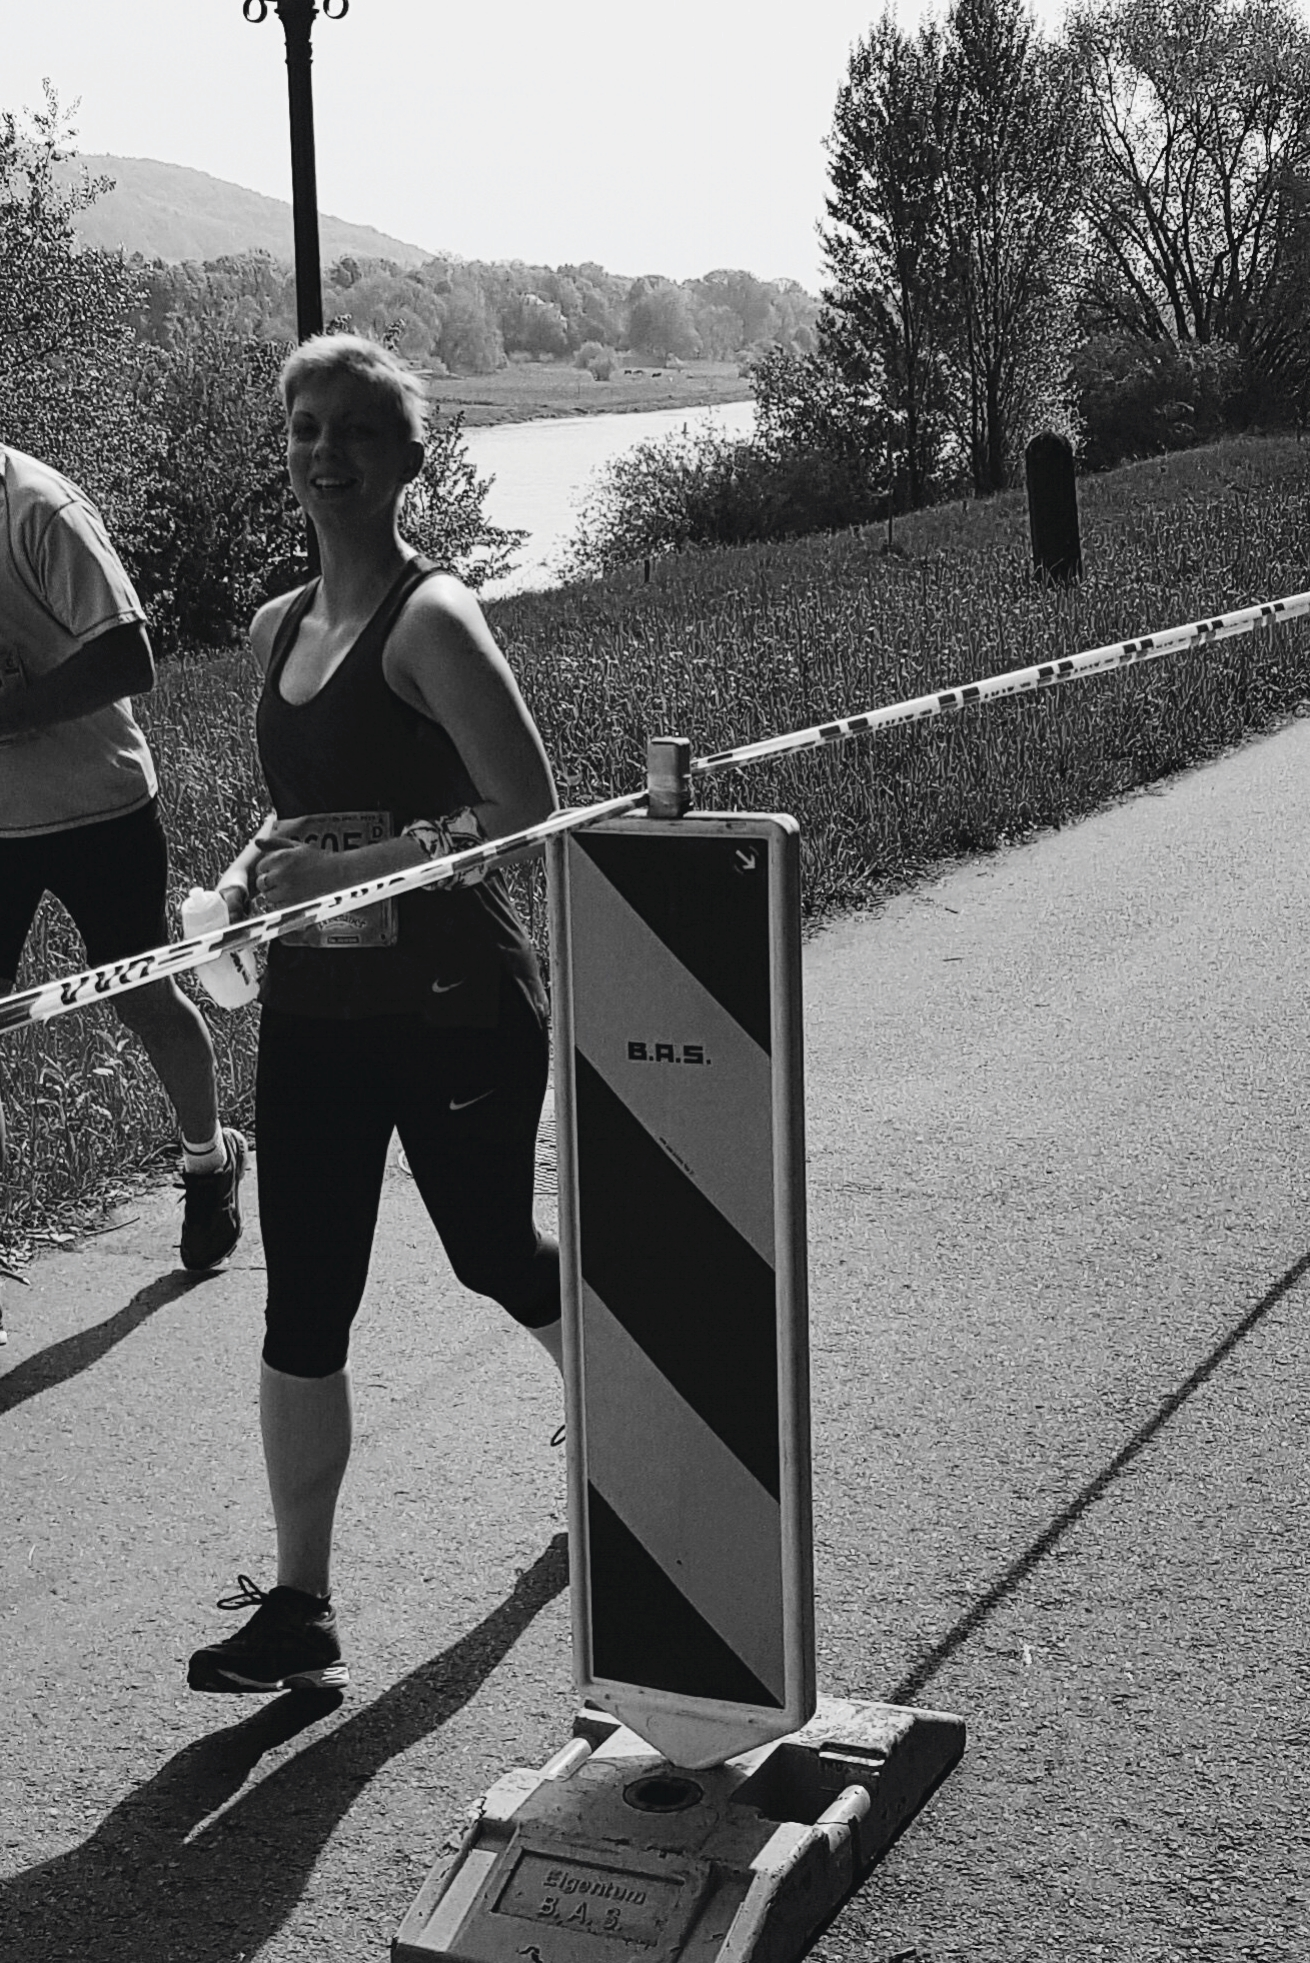 Happier times, at around 9km